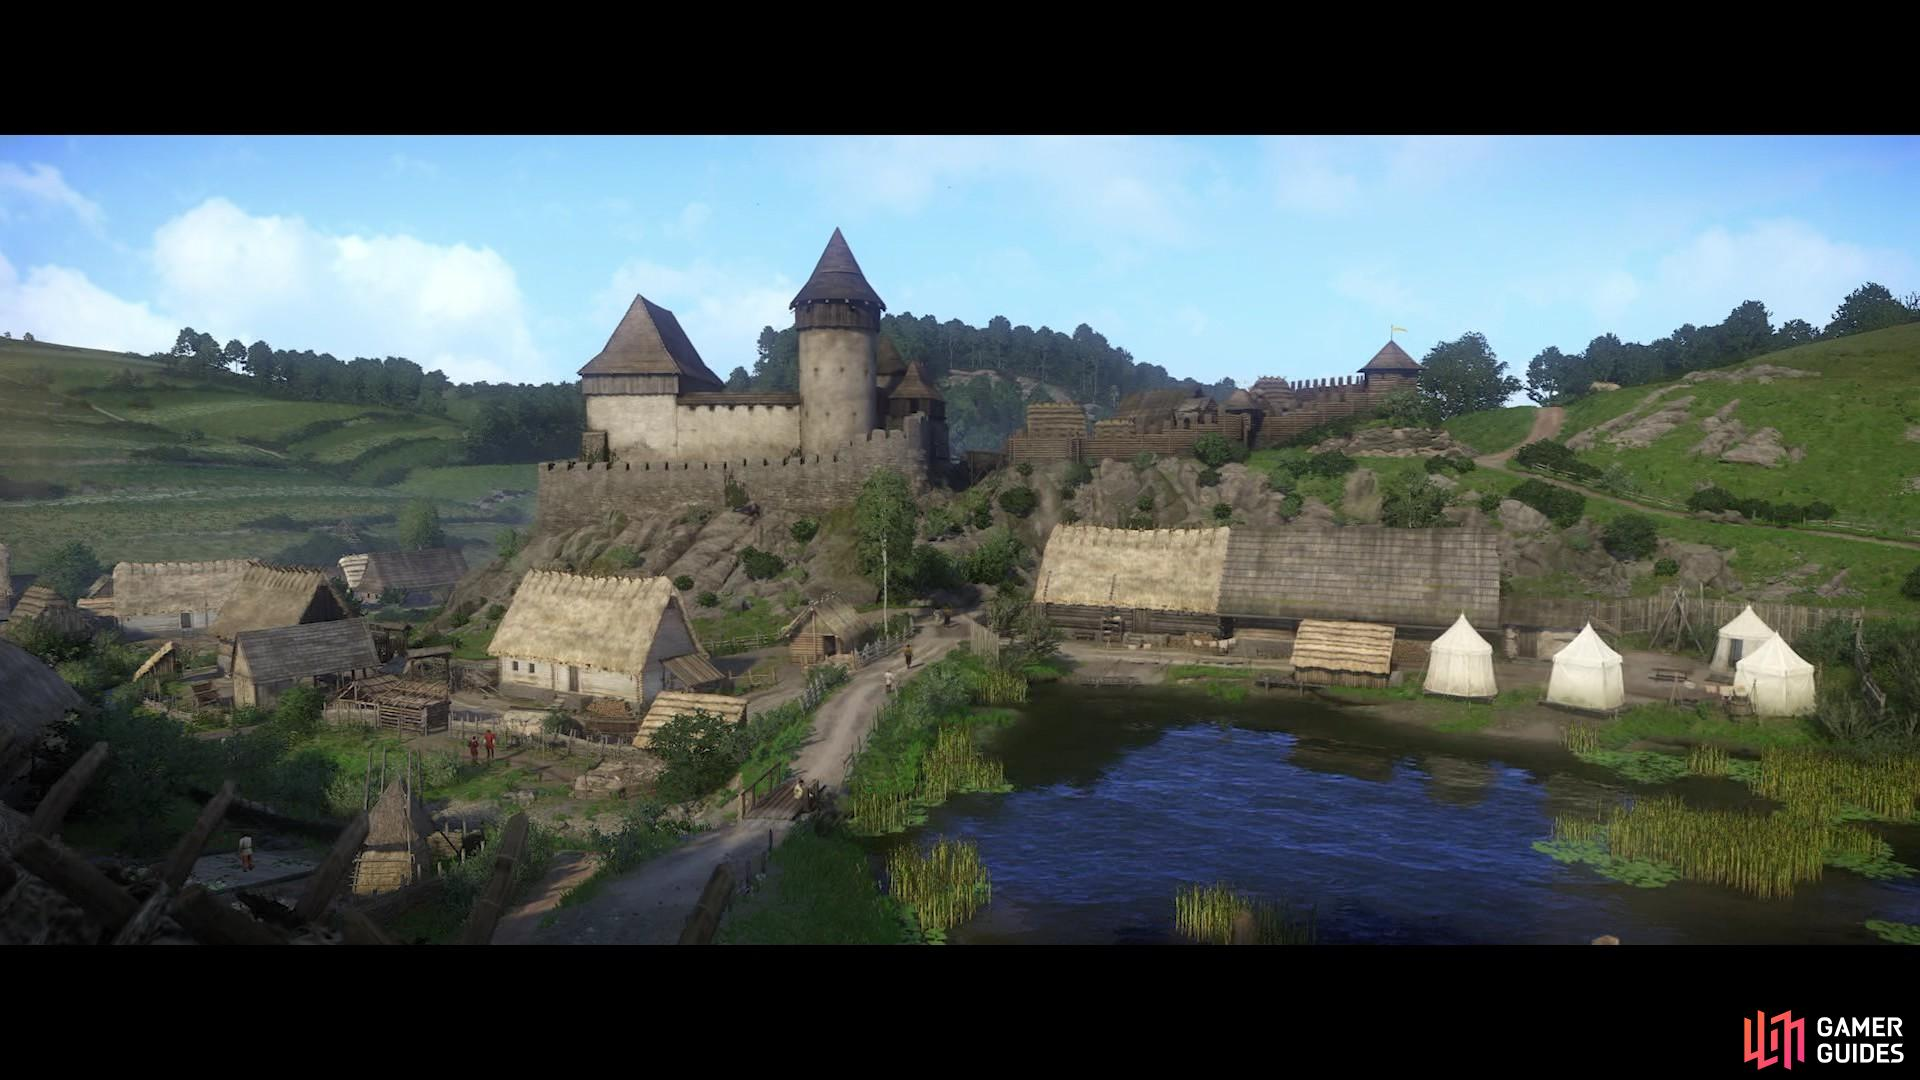 Upon seeing Talmberg in the distance a cutscene will follow in which Henry is saved by the Talmberg archers.